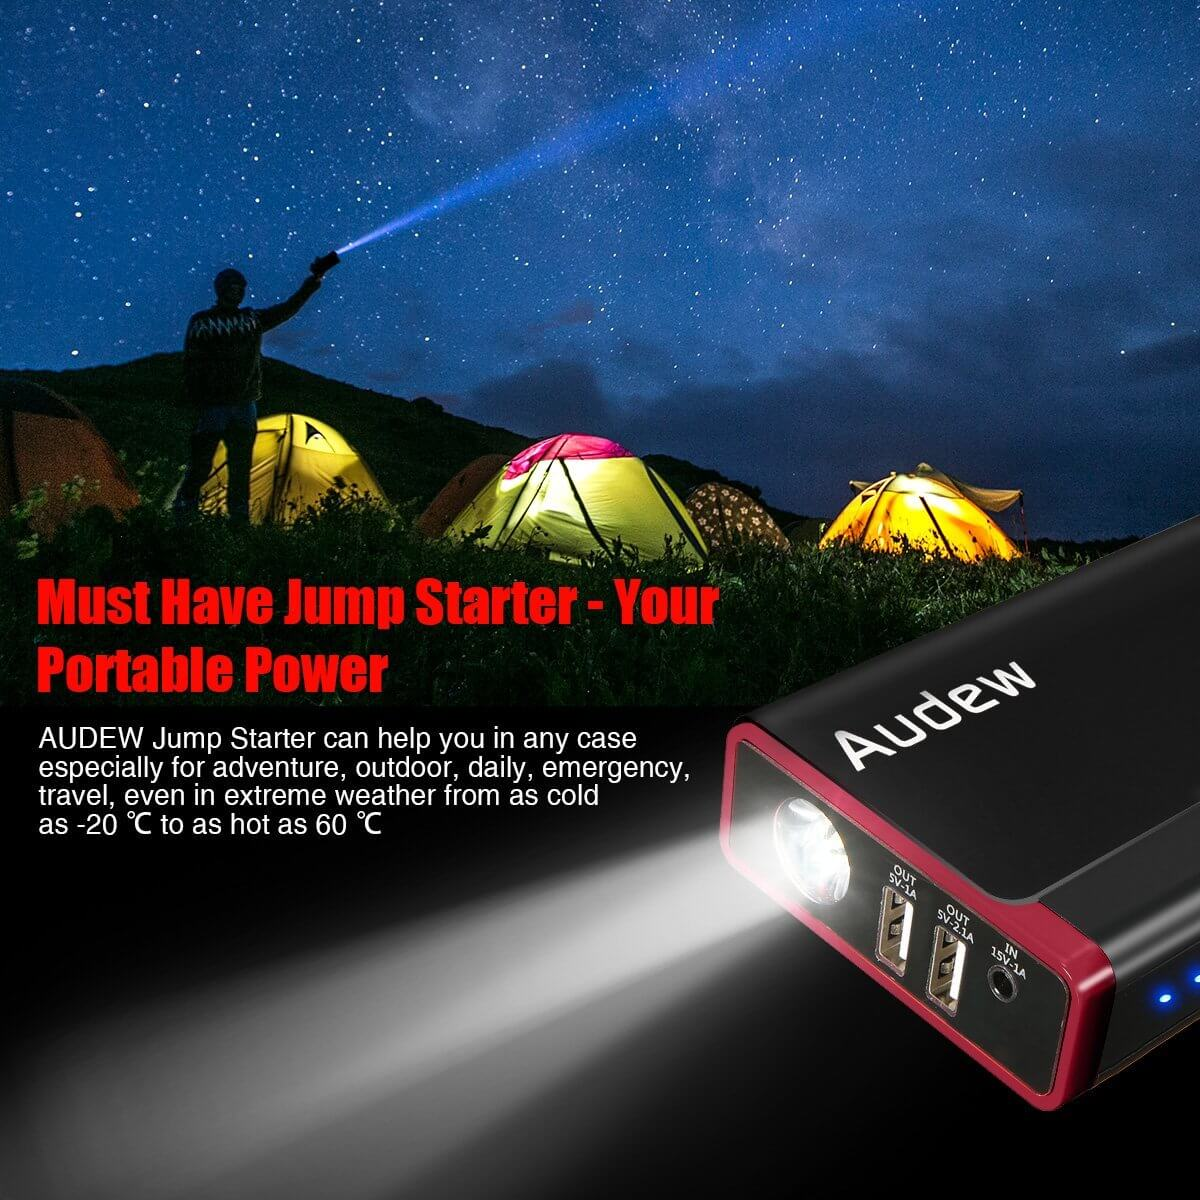 Audew 13800mAh Battery Booster 500A Portable Car Jump Starter